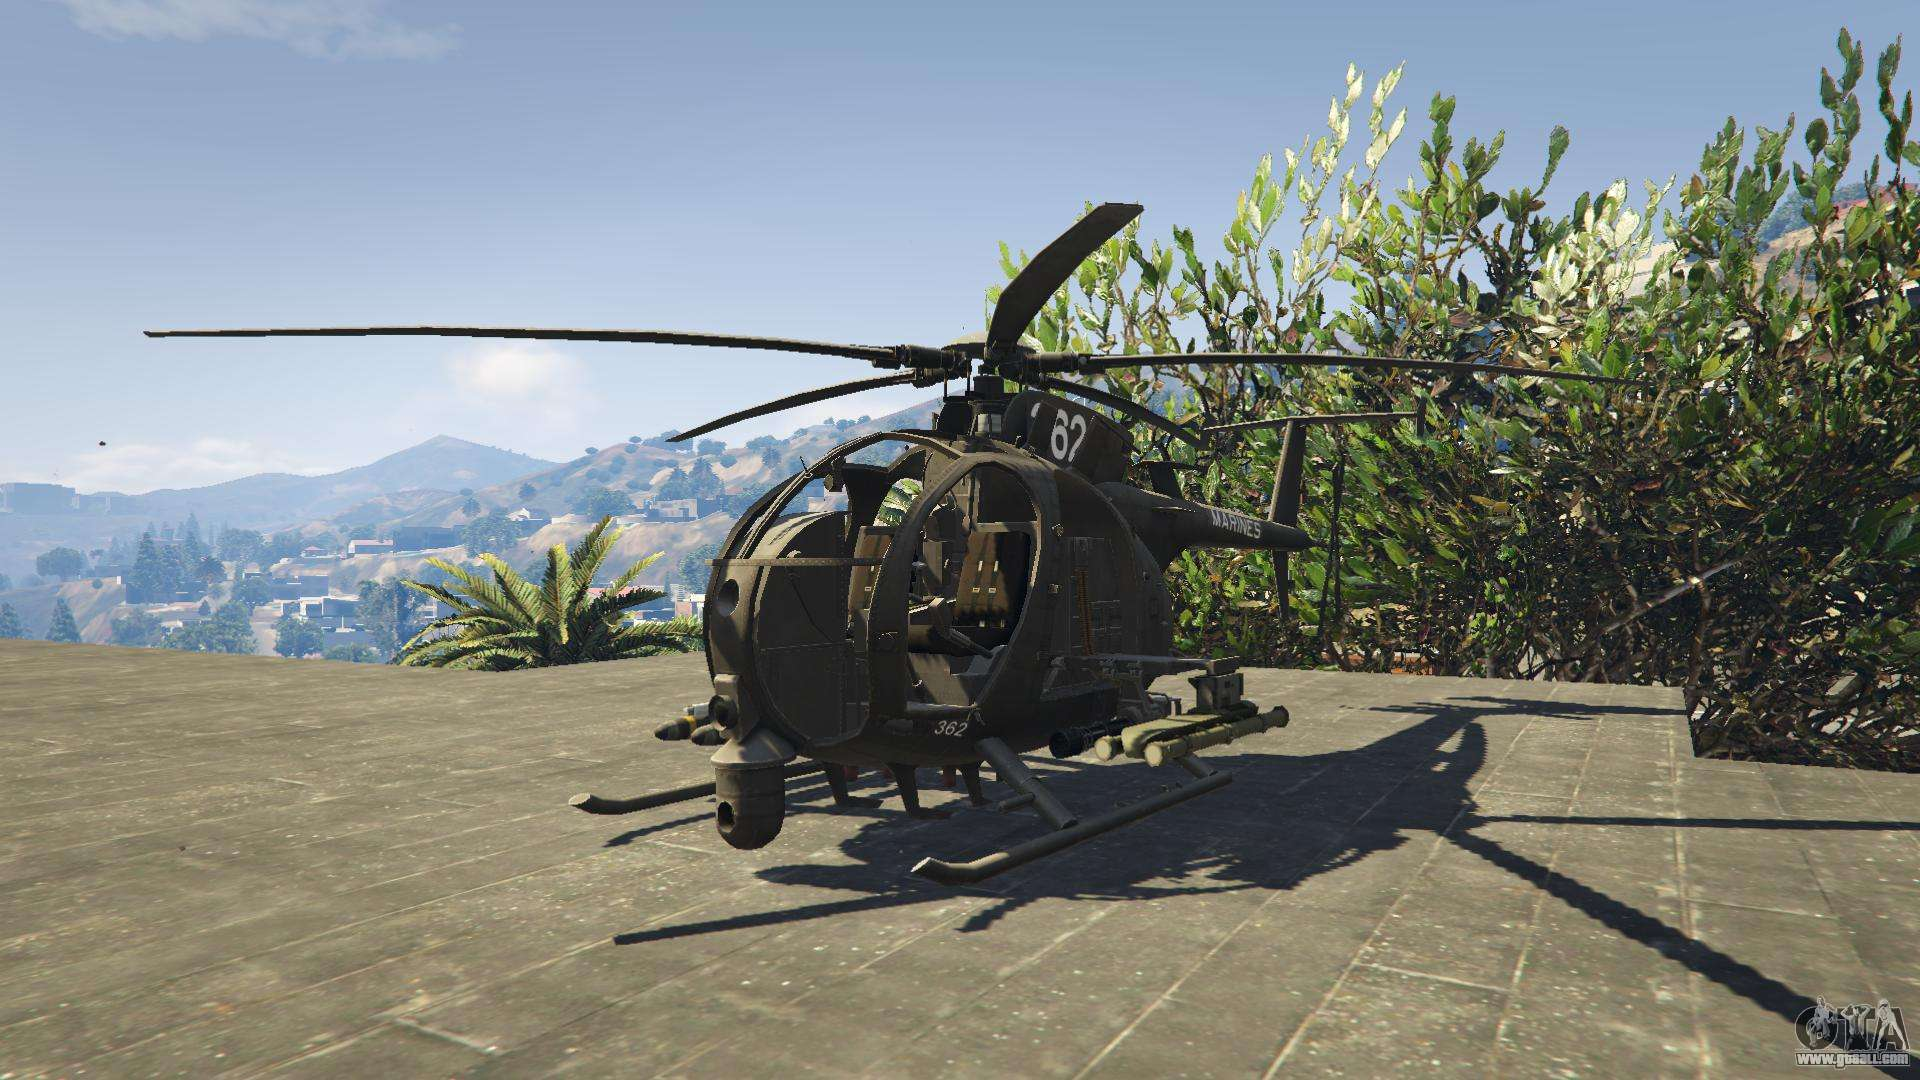 gta 3 cheat for helicopter with 69663 Mh 6 Ah 6 Little Bird Marine on Gta V Cheats moreover 85117 Donkey Form Shrek additionally 69663 Mh 6 Ah 6 Little Bird Marine further plete List Of Gta 5 Cheat Codes also Grand Theft Auto Iv.